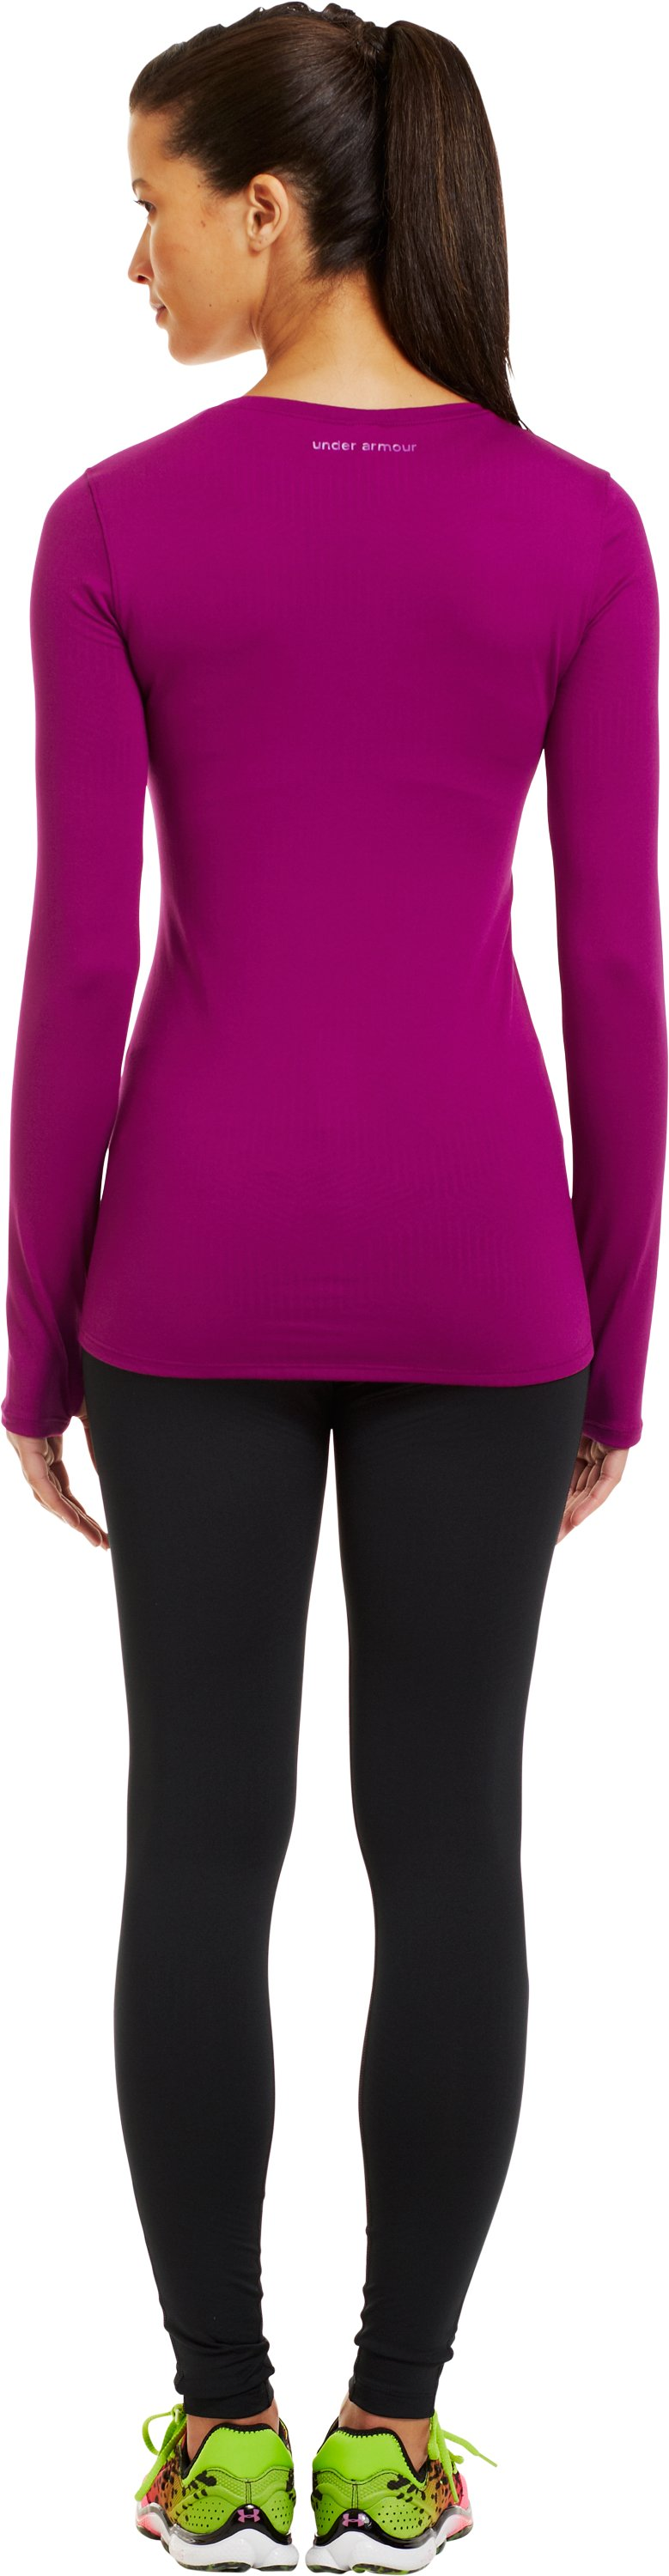 Women's ColdGear® Infrared V-Neck Long Sleeve, Aubergine, Back